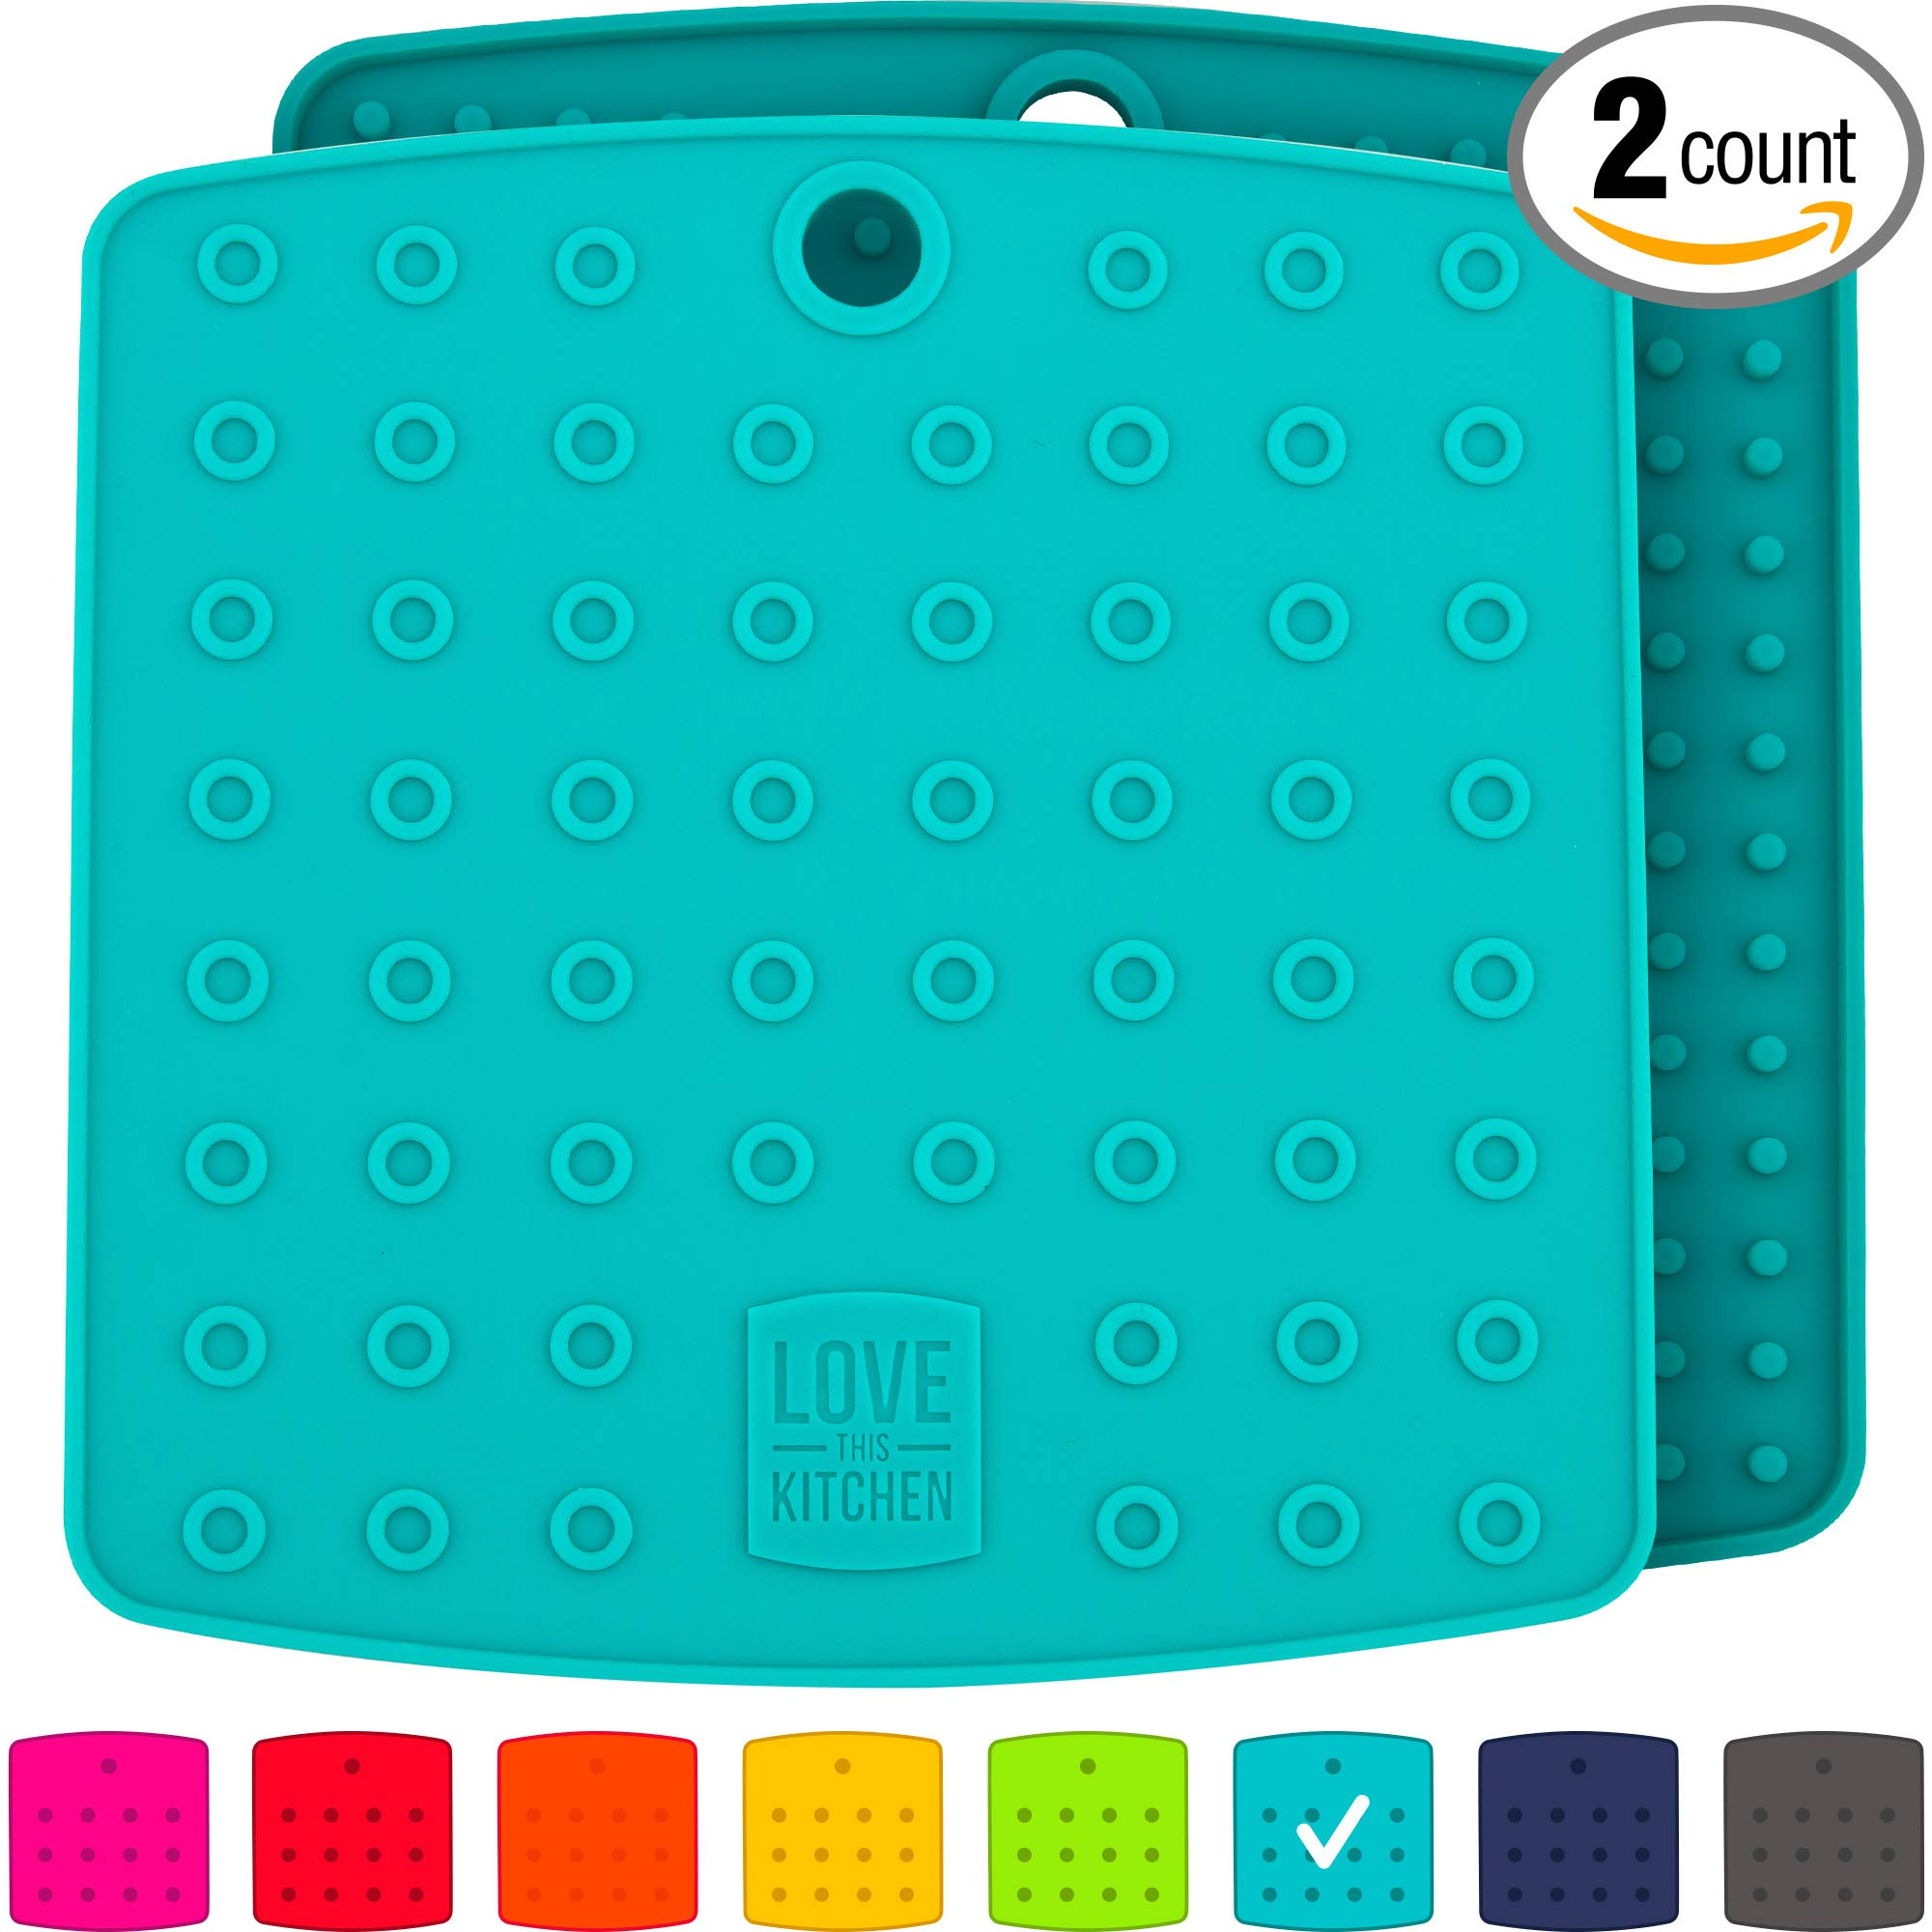 Premium Silicone Trivet Mats/Hot Pads, Pot Holders, Spoon Rest, Jar Opener & Coasters - Our 5 in 1 Kitchen Tool is Heat Resistant to 442 °F, Thick & Flexible (7'' x 7'', Teal, Set of 2) by Love This Kitchen